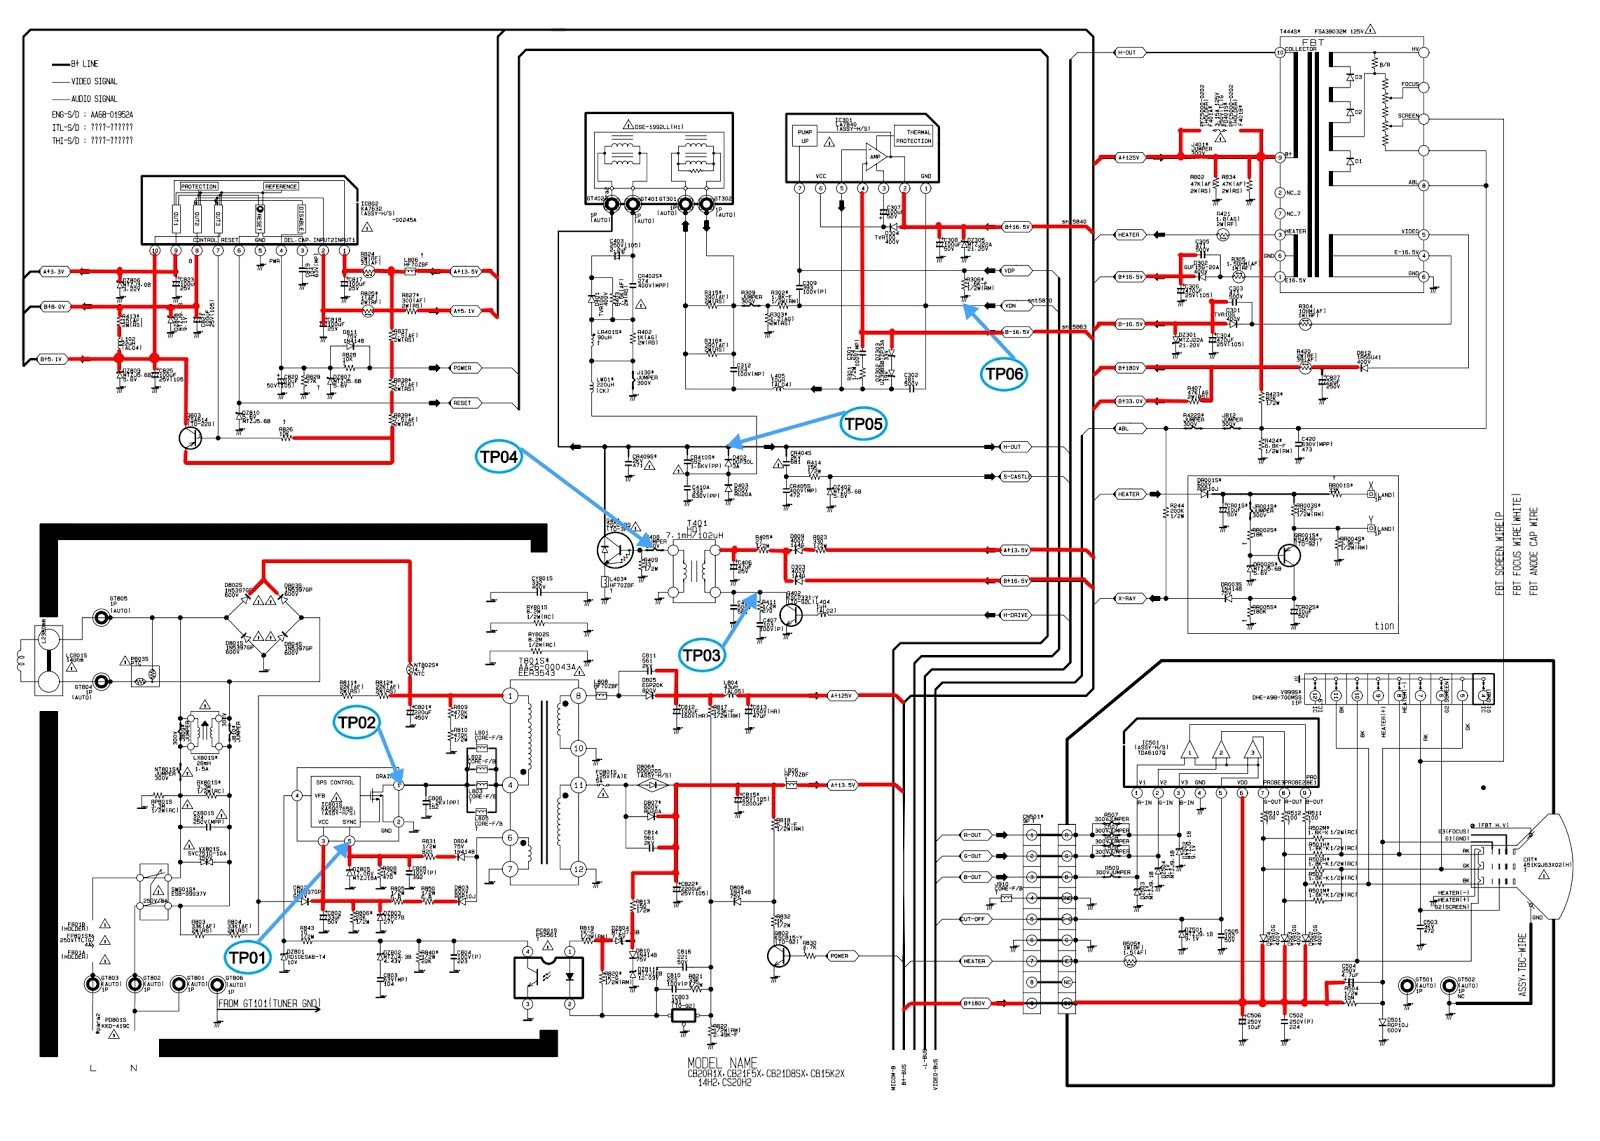 samsung tv hookup diagrams fav wiring diagram Samsung Dryer Wiring Diagram